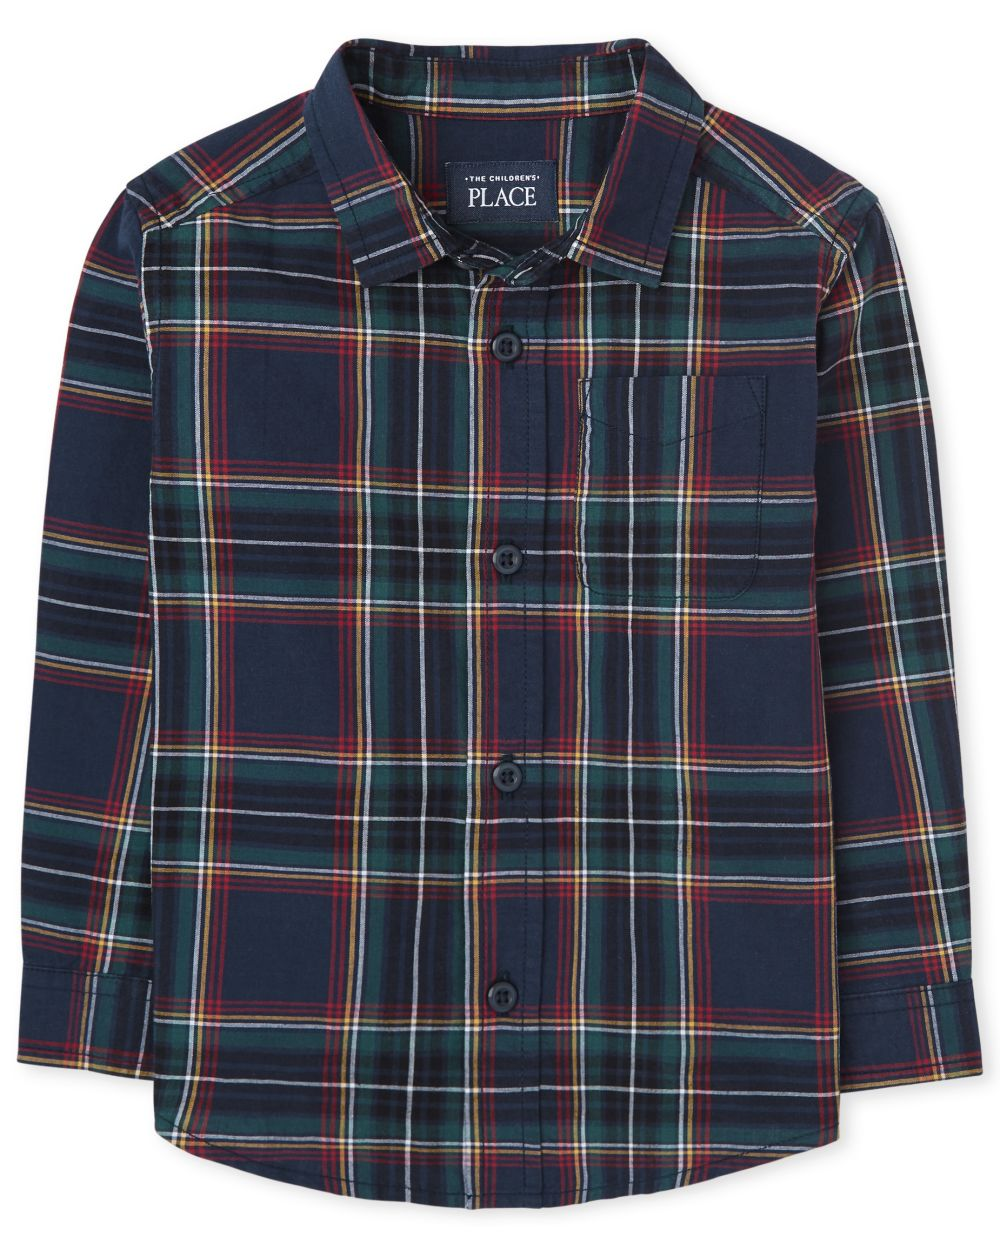 Toddler Boys Matching Family Plaid Poplin Button Down Shirt